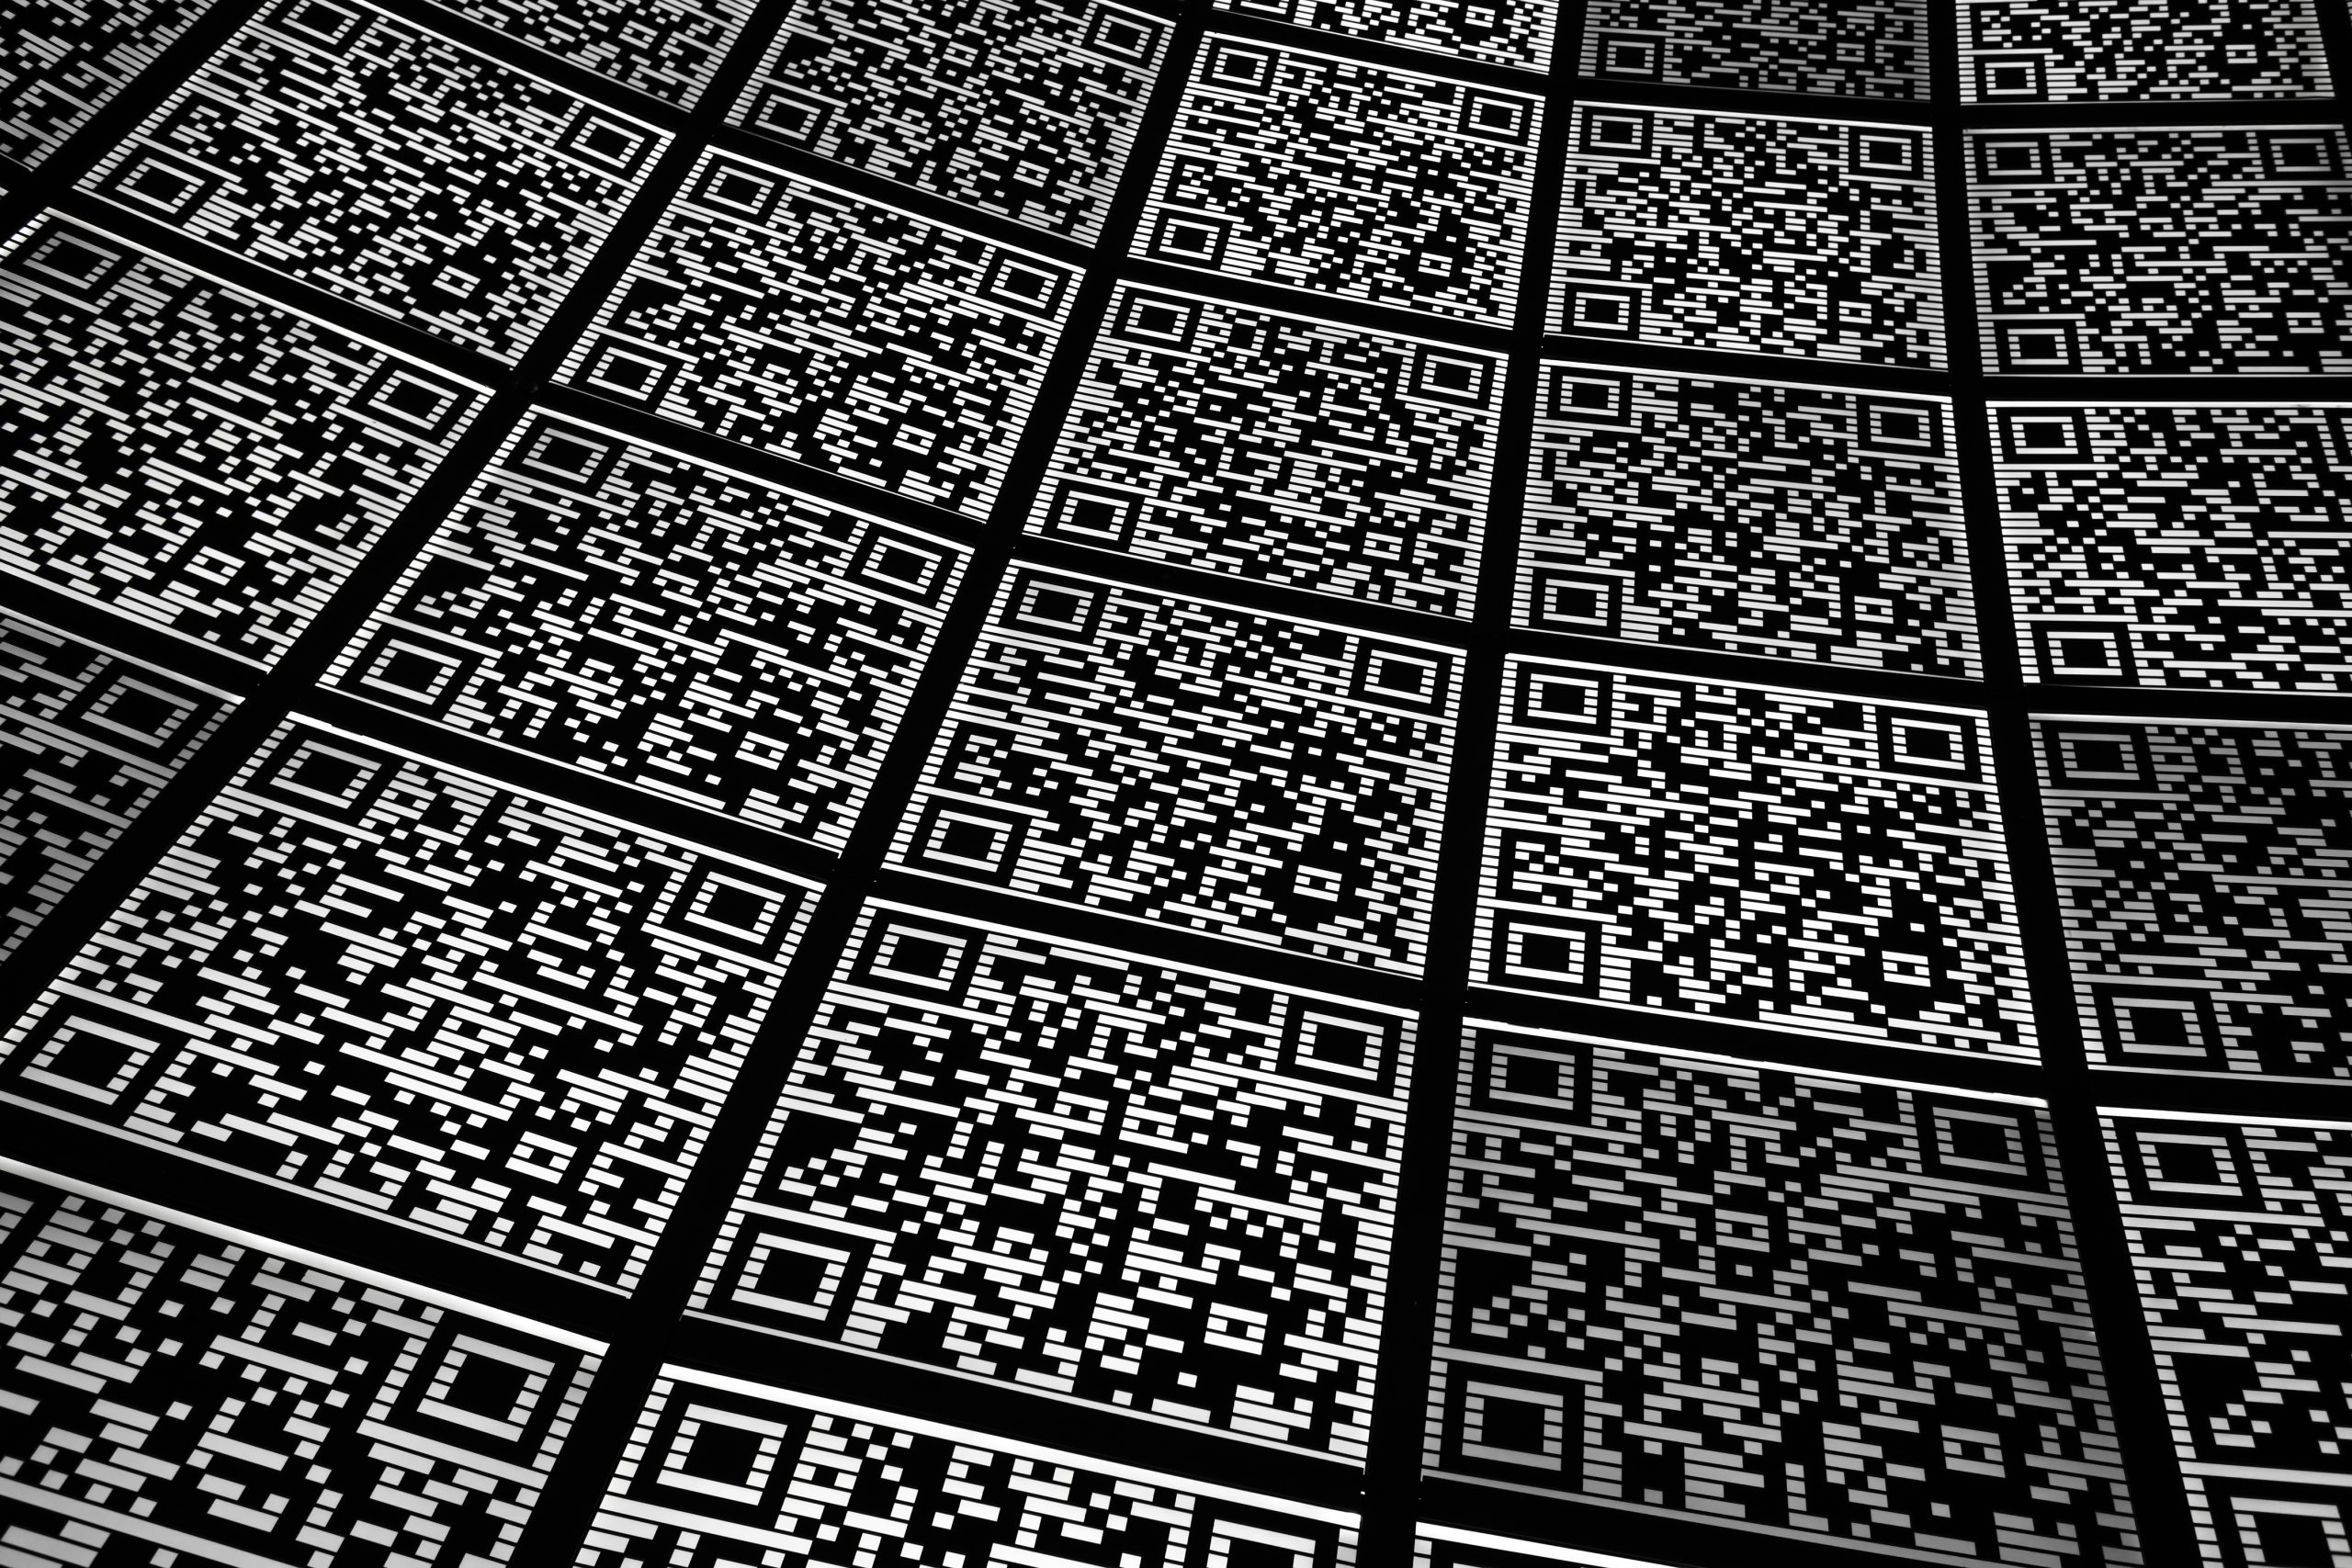 QR Codes: A Waste of Space